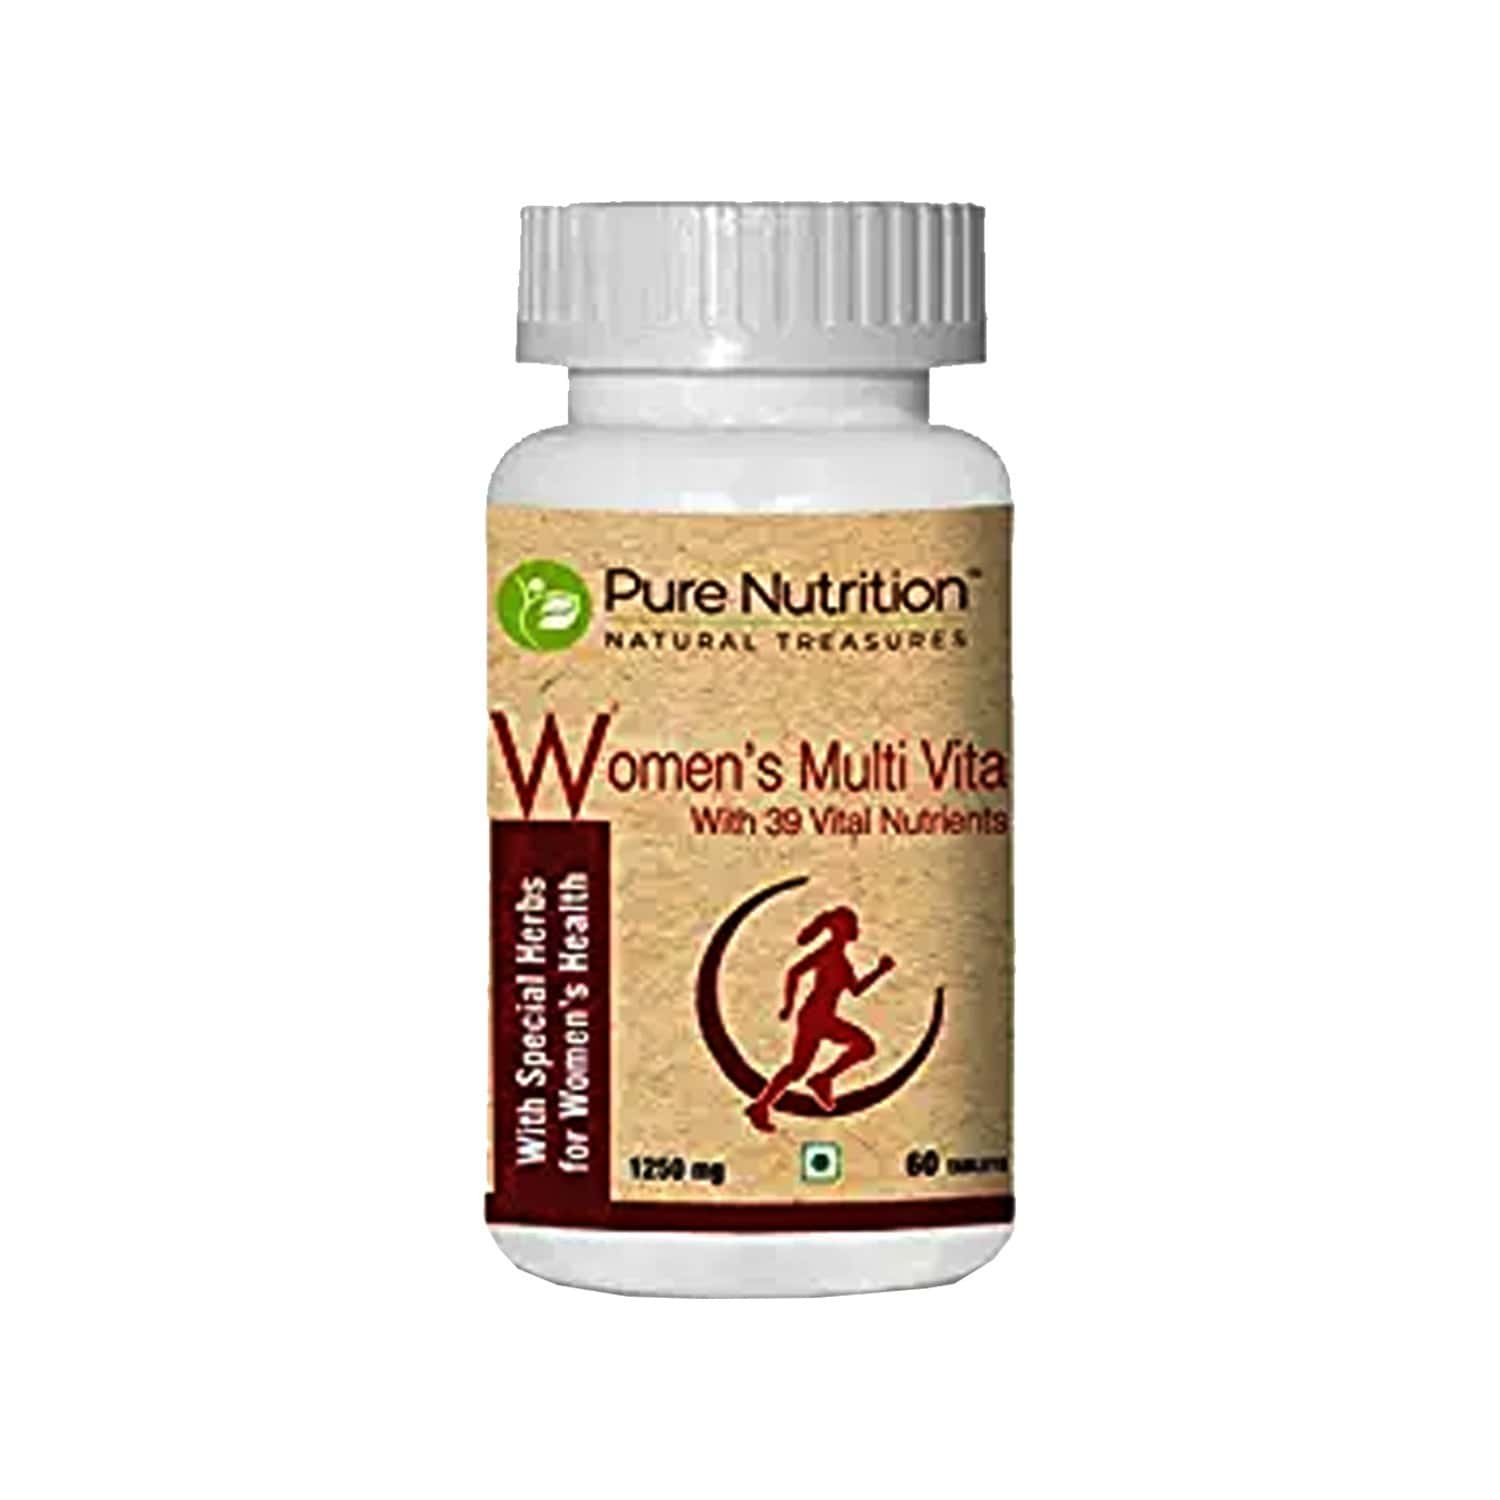 Pure Nutrition Womens Multi Vita, Fortified With 30 Bioactive Vital Nutrients With Ginseng Extracts, Omega 3 And Multiminerals - 60 Tablets